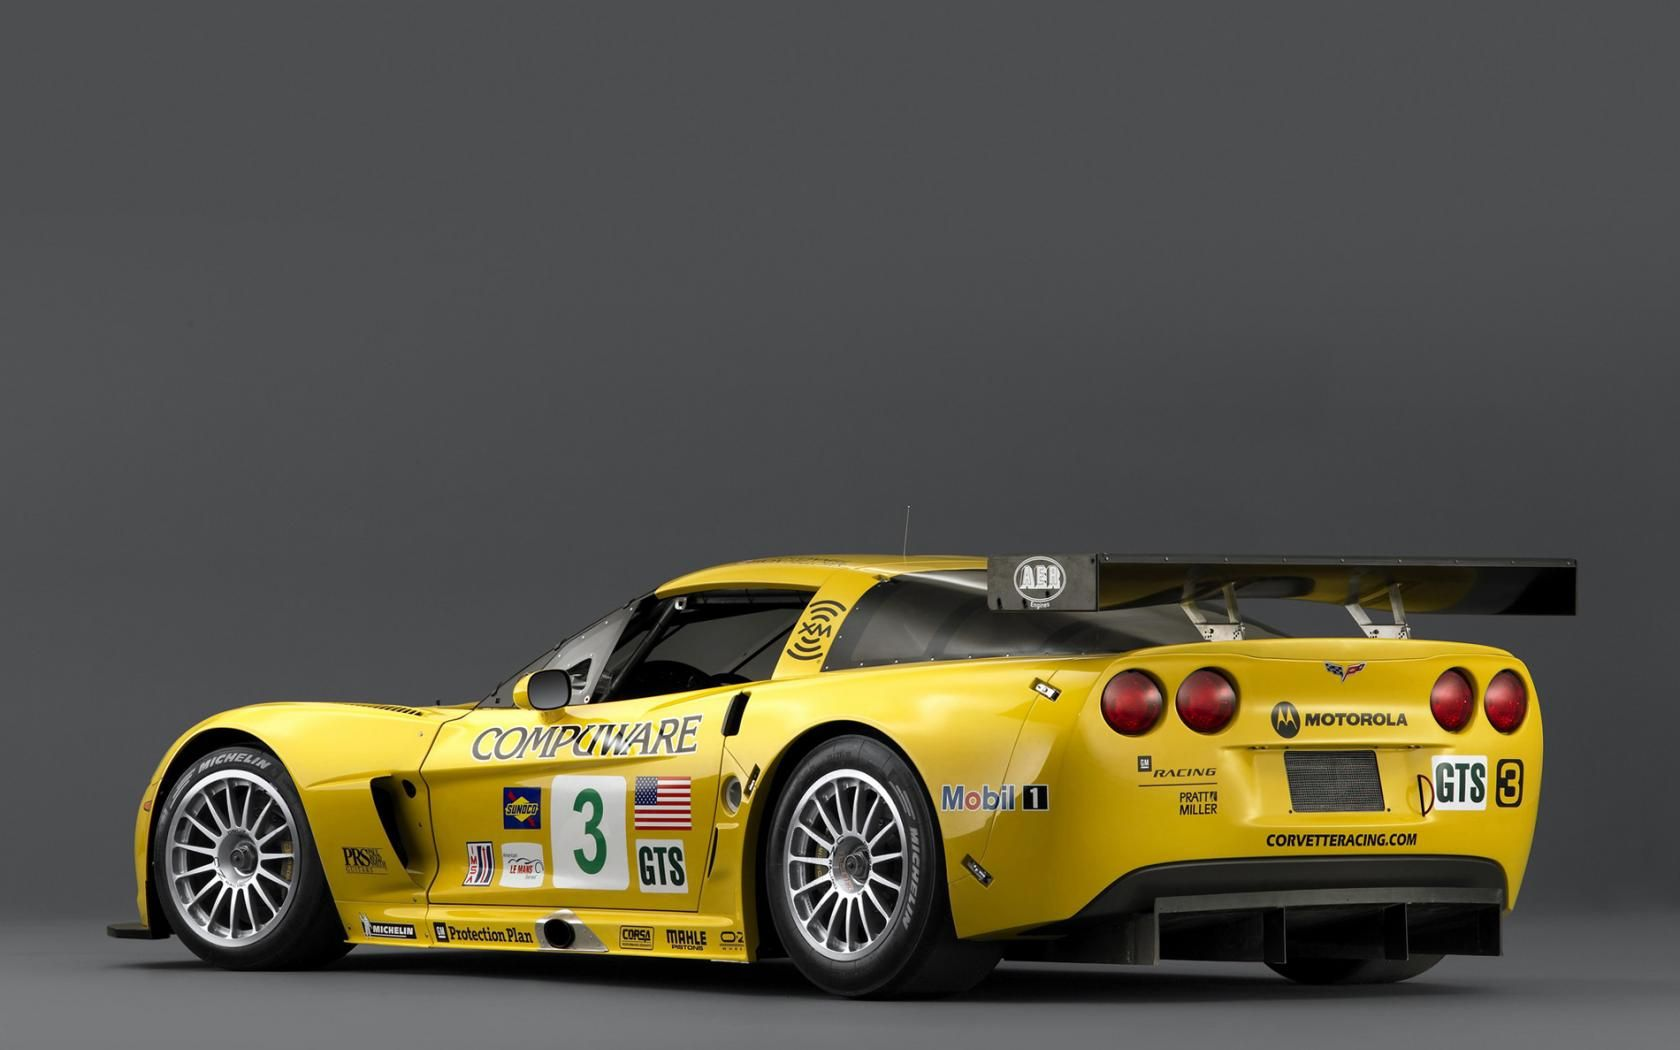 2011 Chevrolet Corvette C6R GTE yellow car